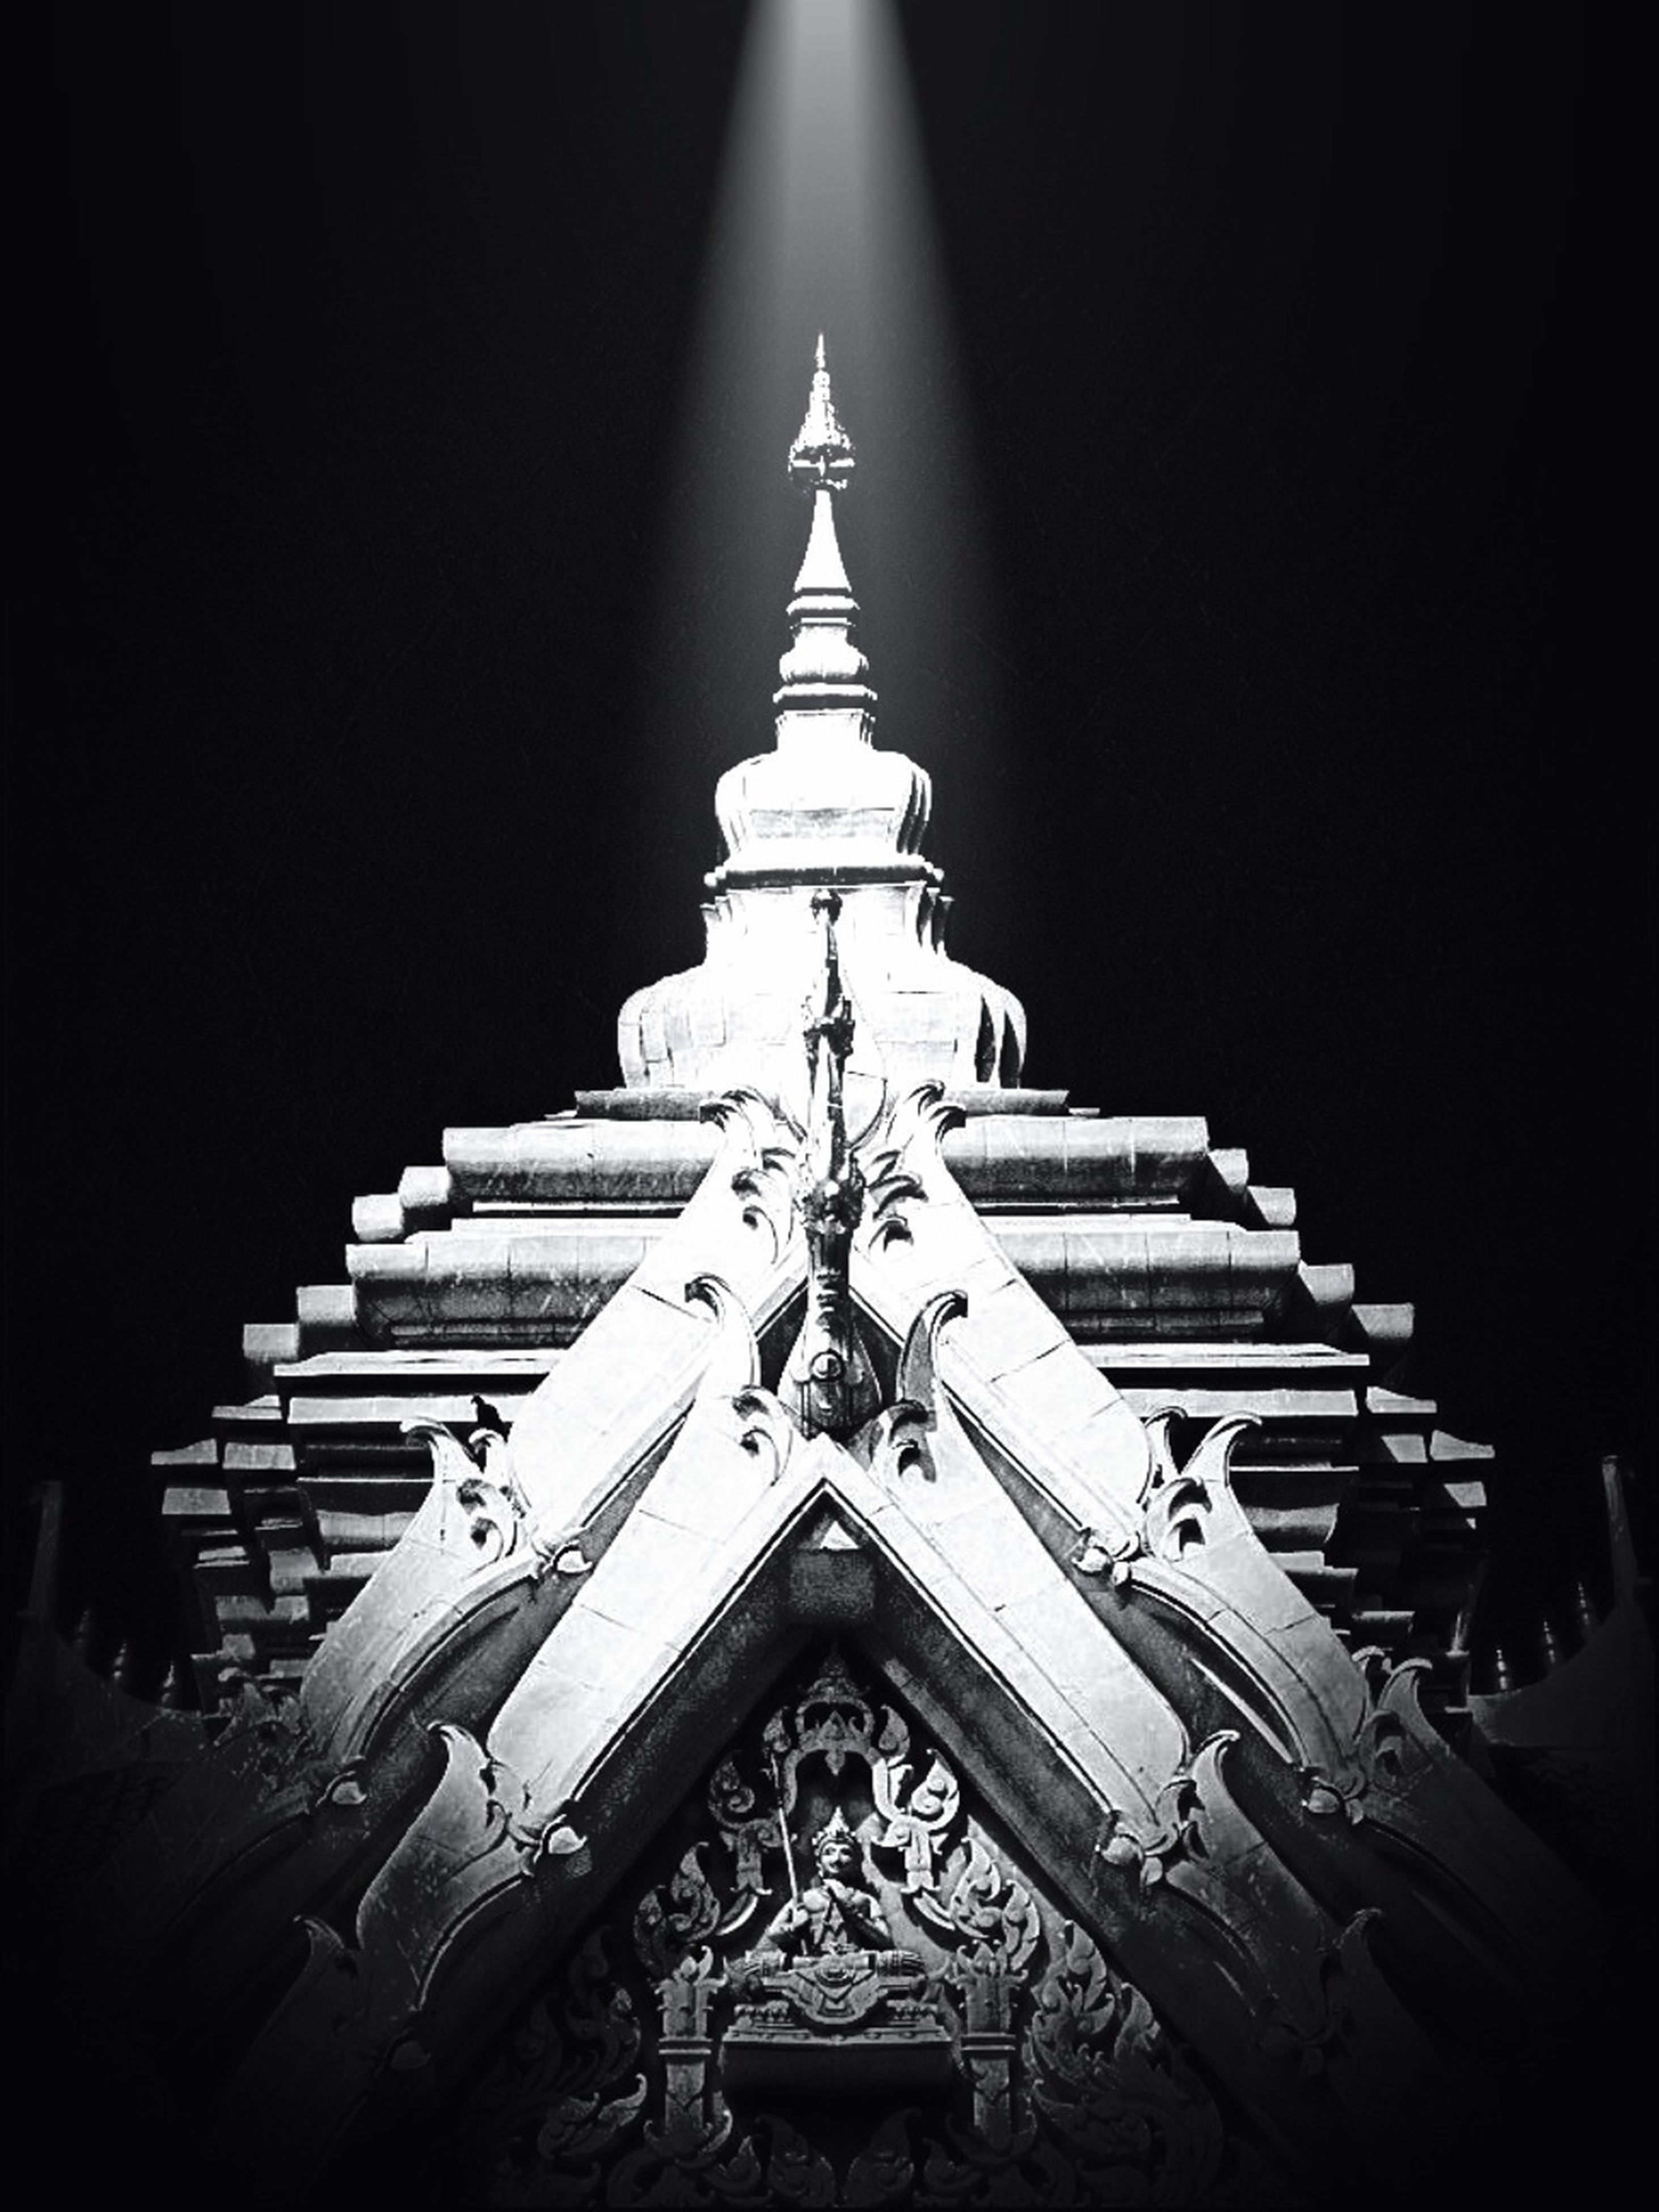 architecture, religion, built structure, building exterior, place of worship, spirituality, low angle view, church, night, clear sky, temple - building, history, cathedral, illuminated, famous place, travel destinations, copy space, sky